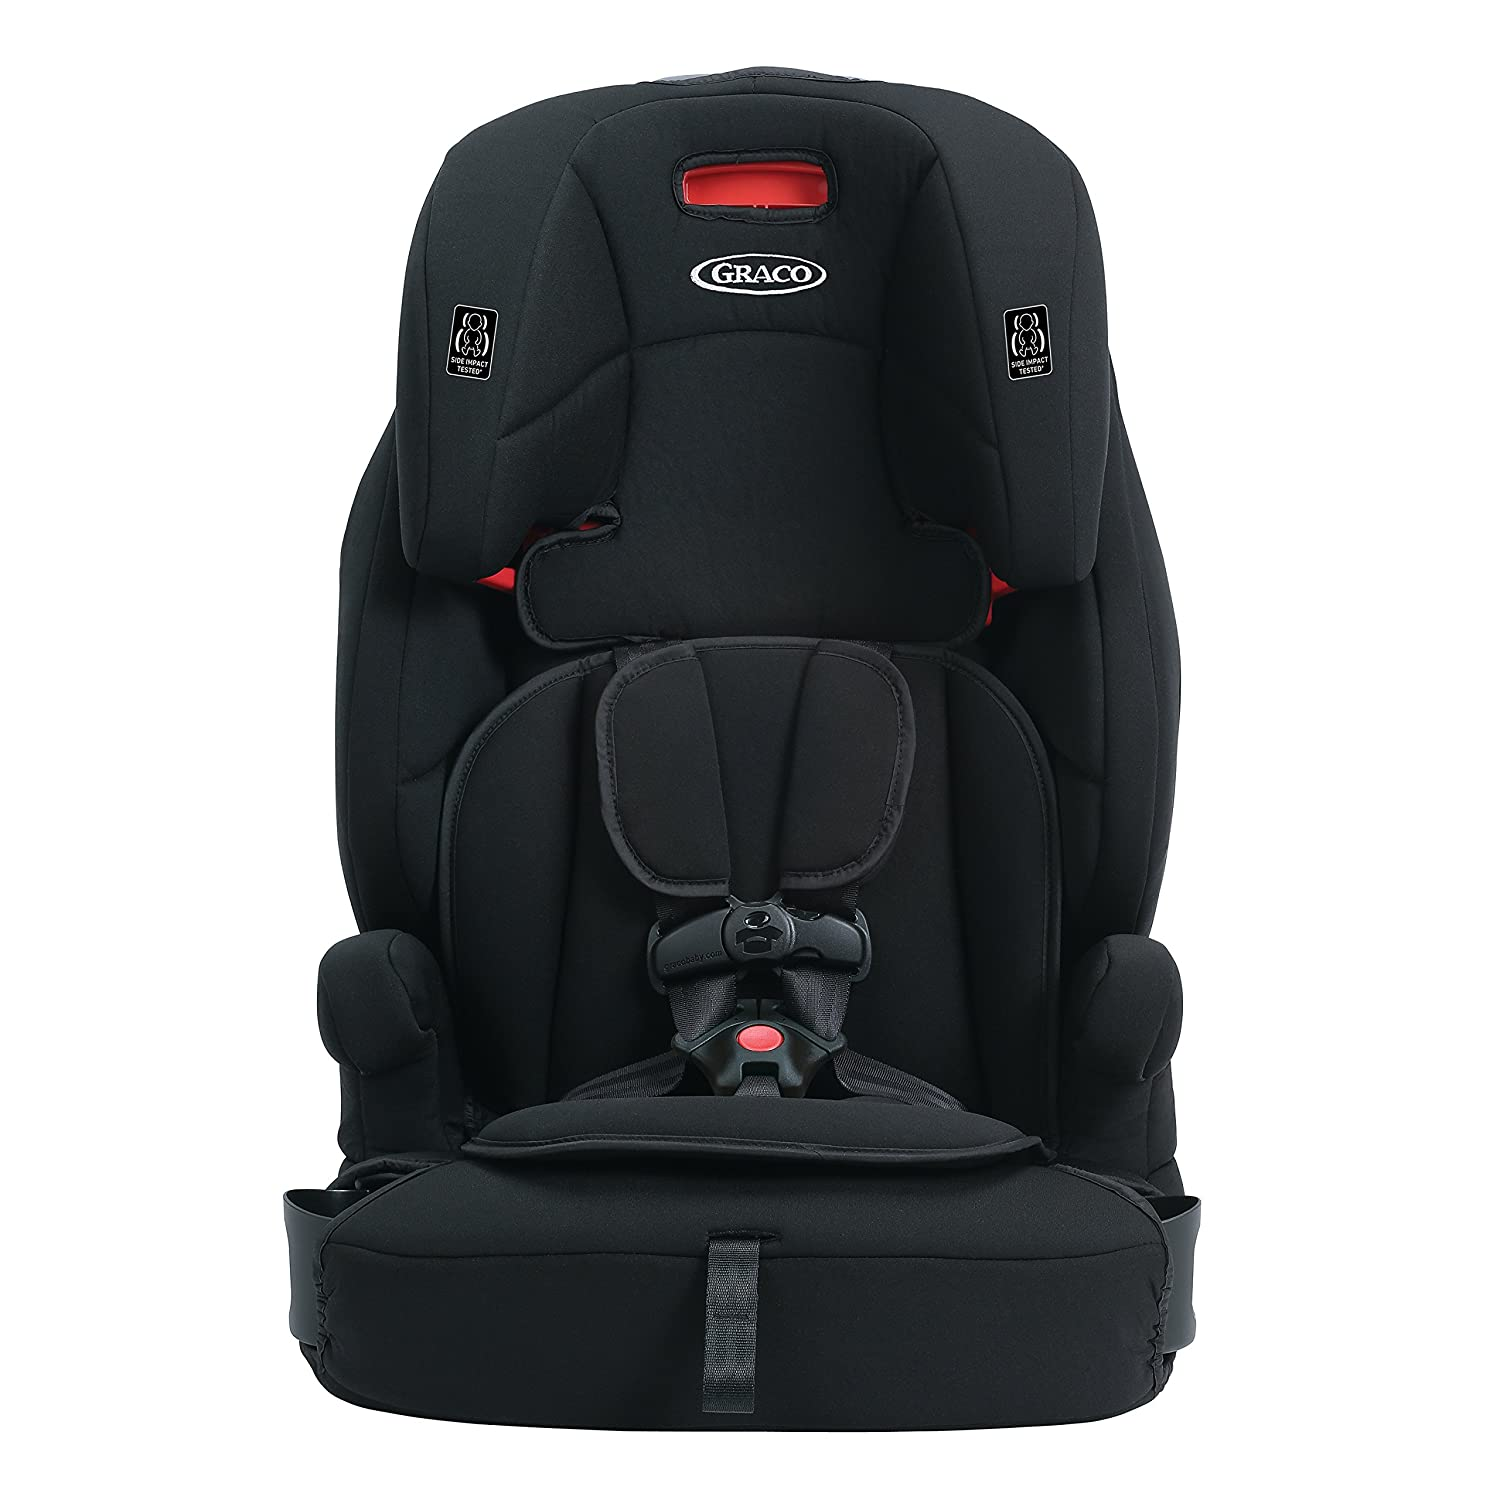 Graco Tranzitions 3 in 1 Harness Top reviewed Car Seat for 4 year old